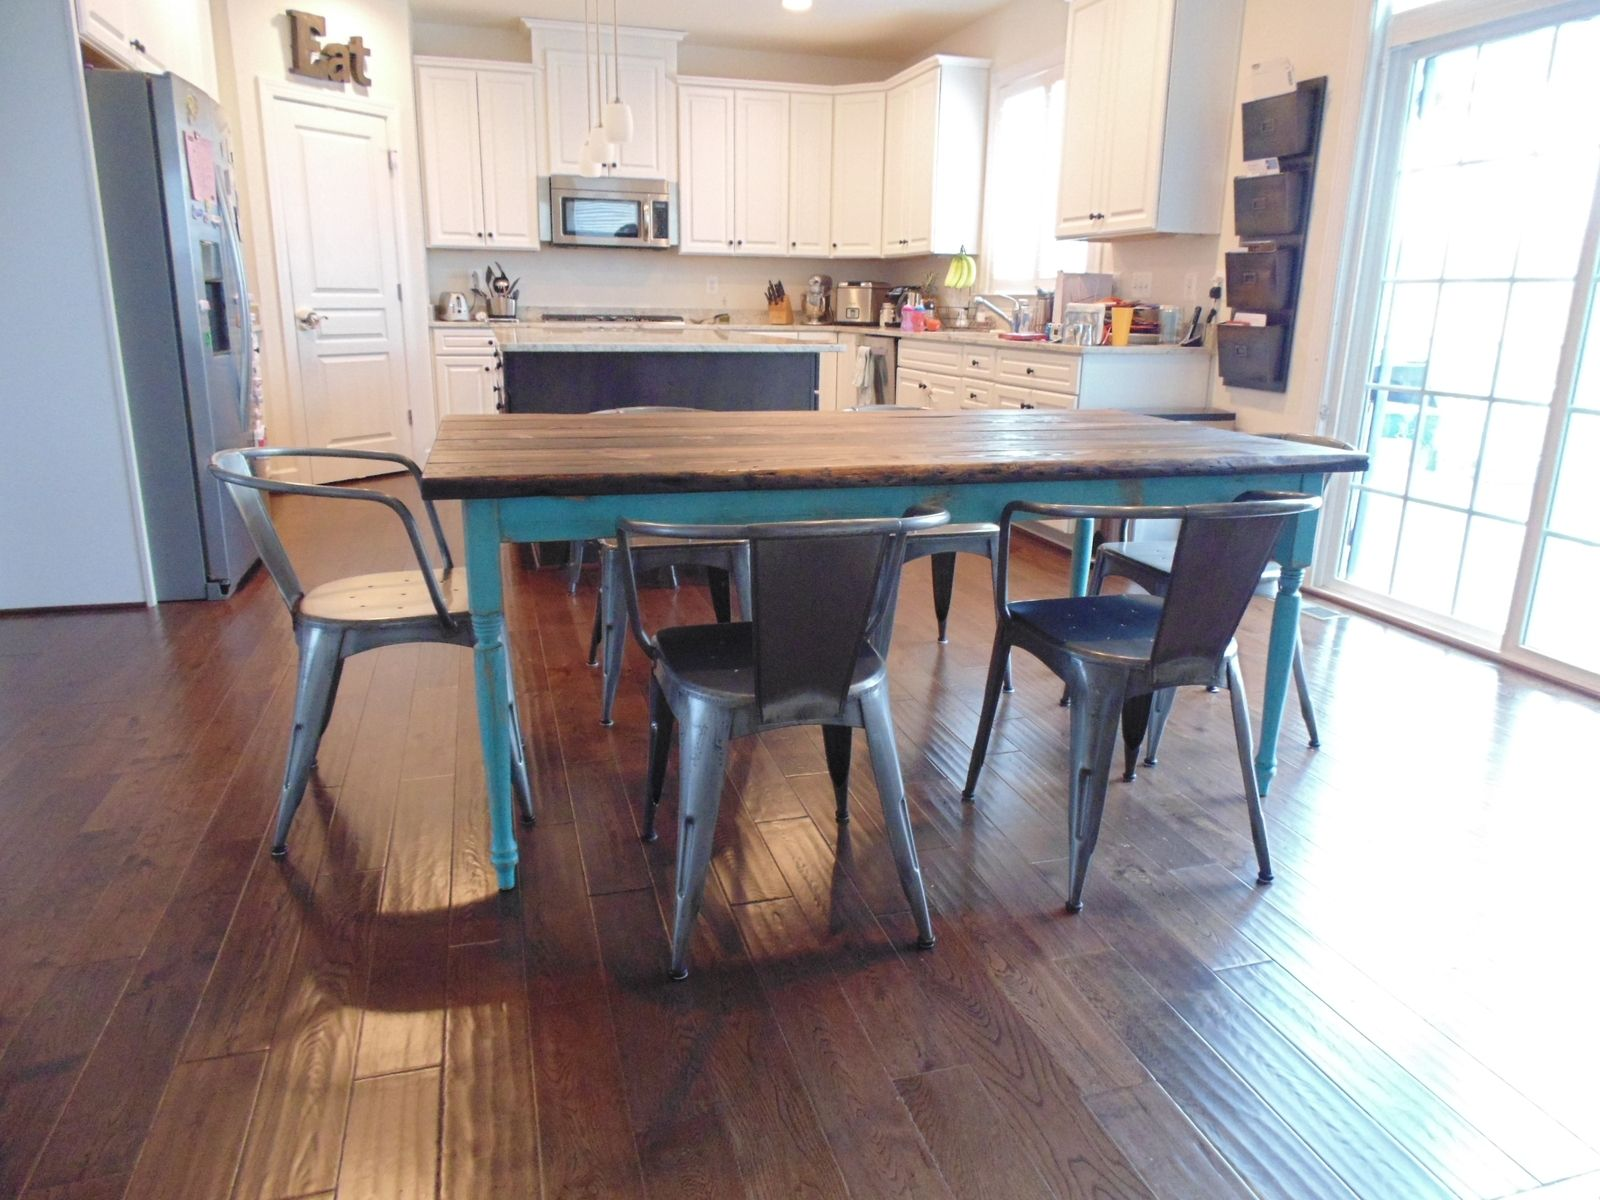 Custom Made Reclaimed Wood Farmhouse Table With Beautiful Turquoise Turned  Legs. Hand Made Reclaimed Wood Farmhouse Table With Beautiful Turquoise